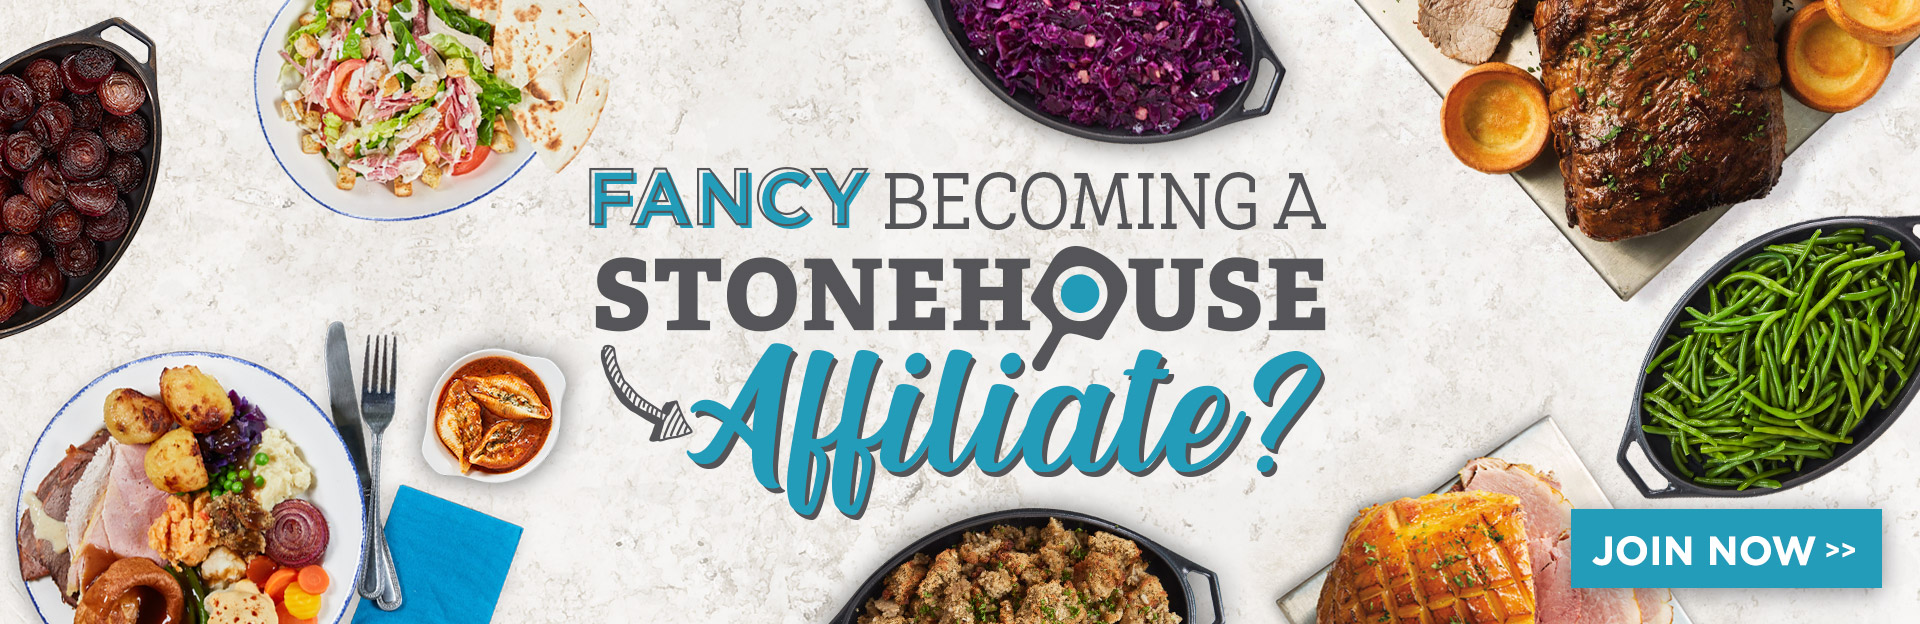 Stonehouse-DN18-Affiliates-HeaderBanner.jpg